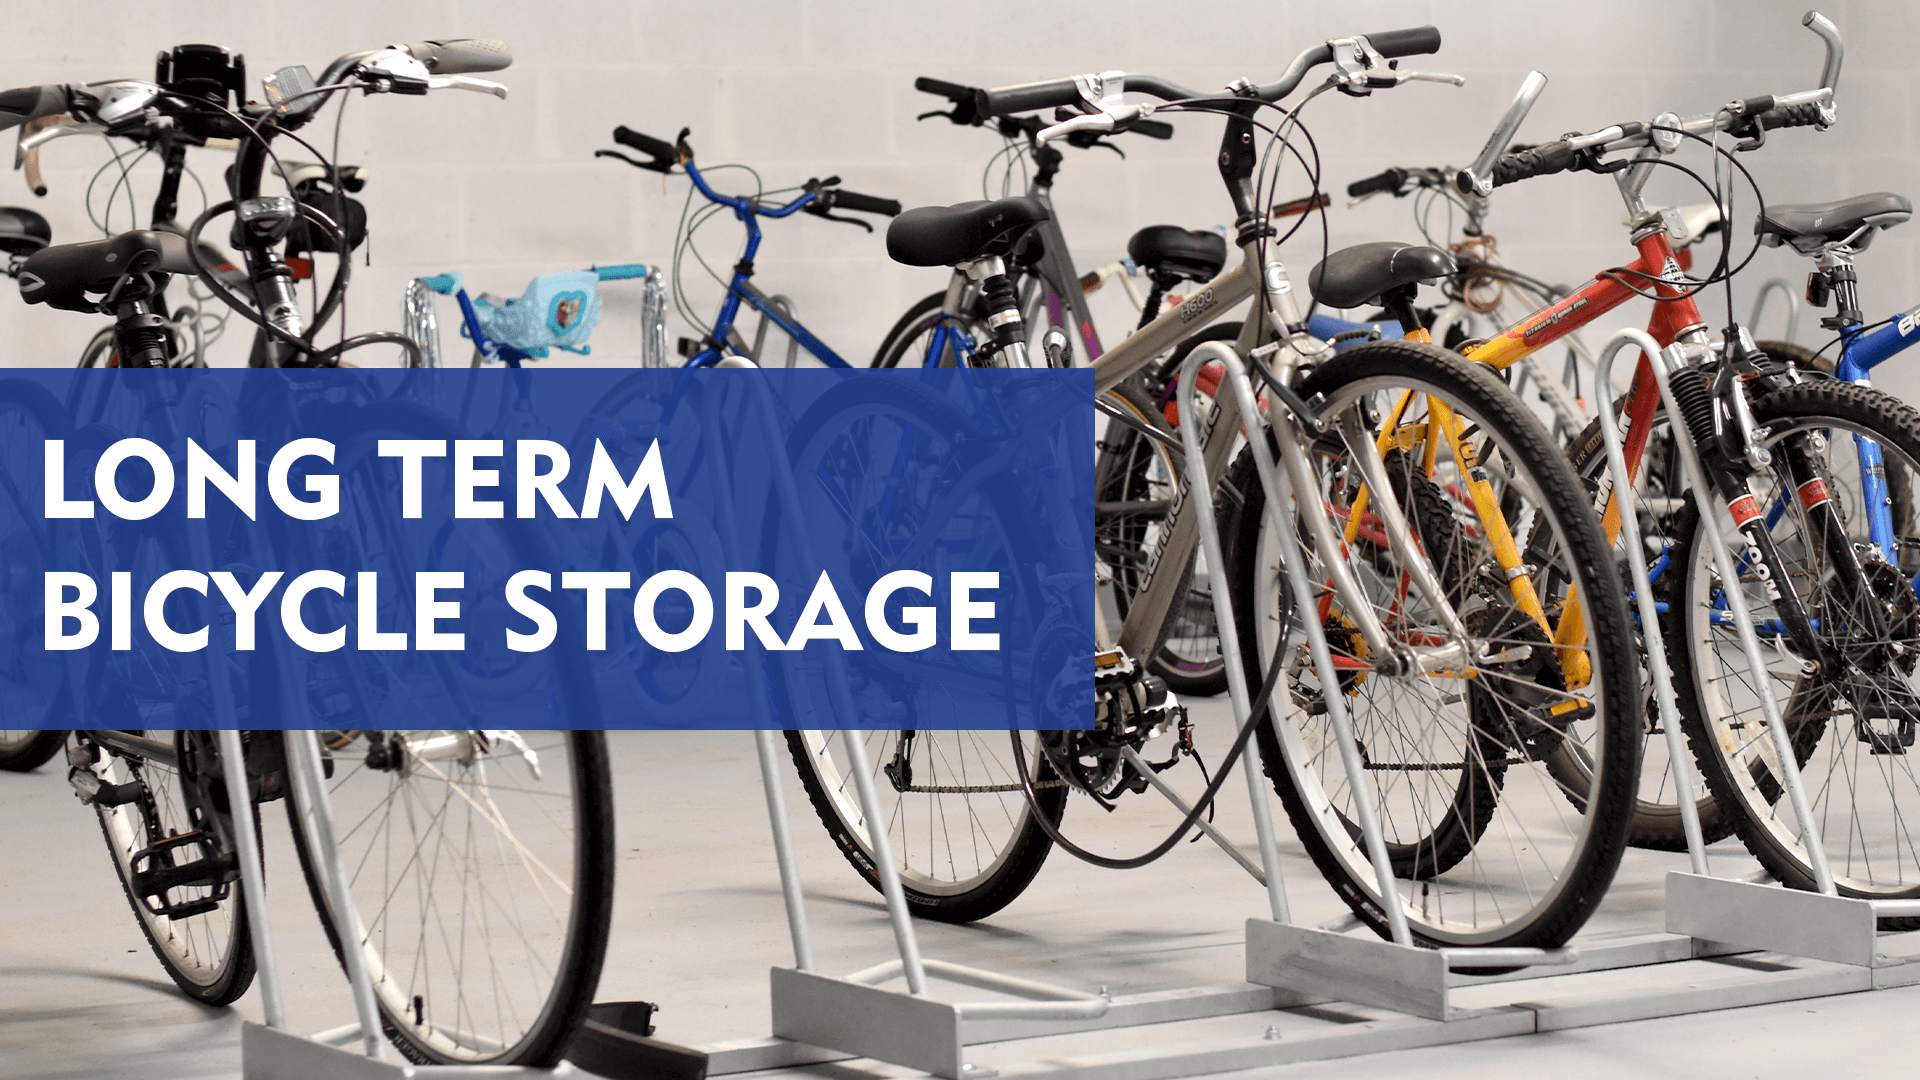 Long Term Bicycle Storage Resource Page